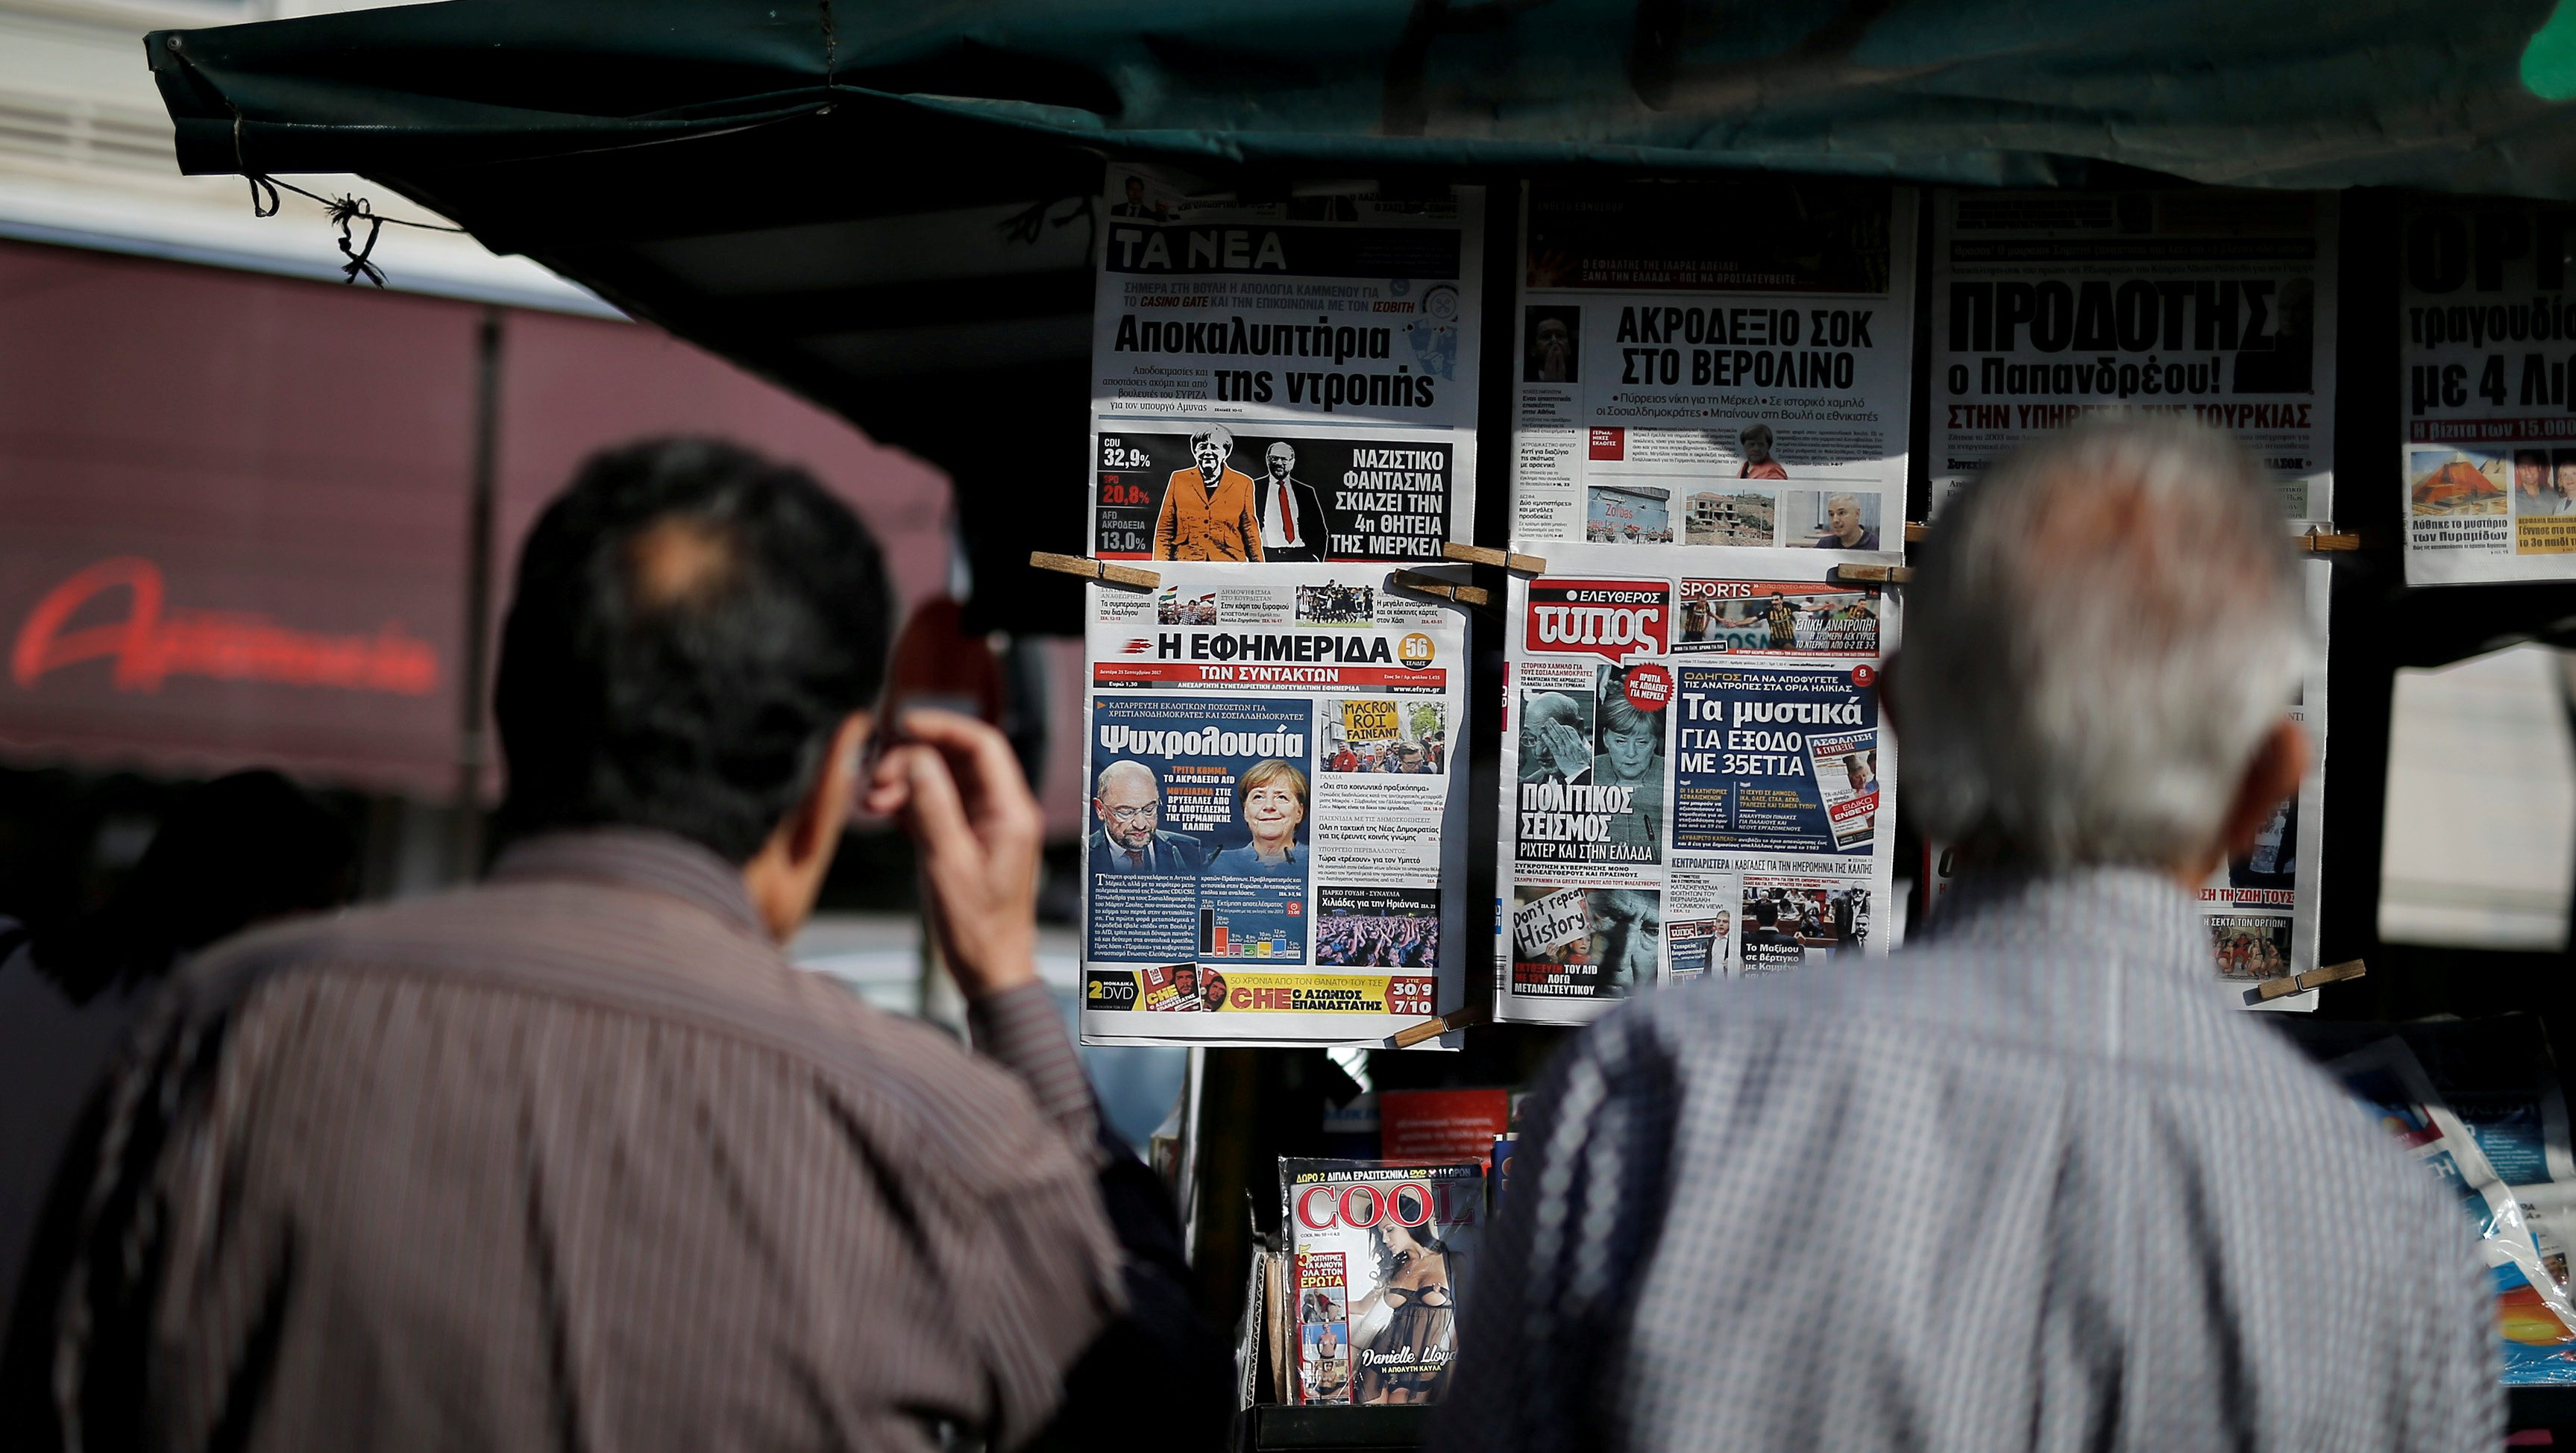 People read newspaper headlines on the German elections results at a kiosk in Athens, Greece September 25, 2017. REUTERS/Alkis Konstantinidis - RC14DC3D3E80